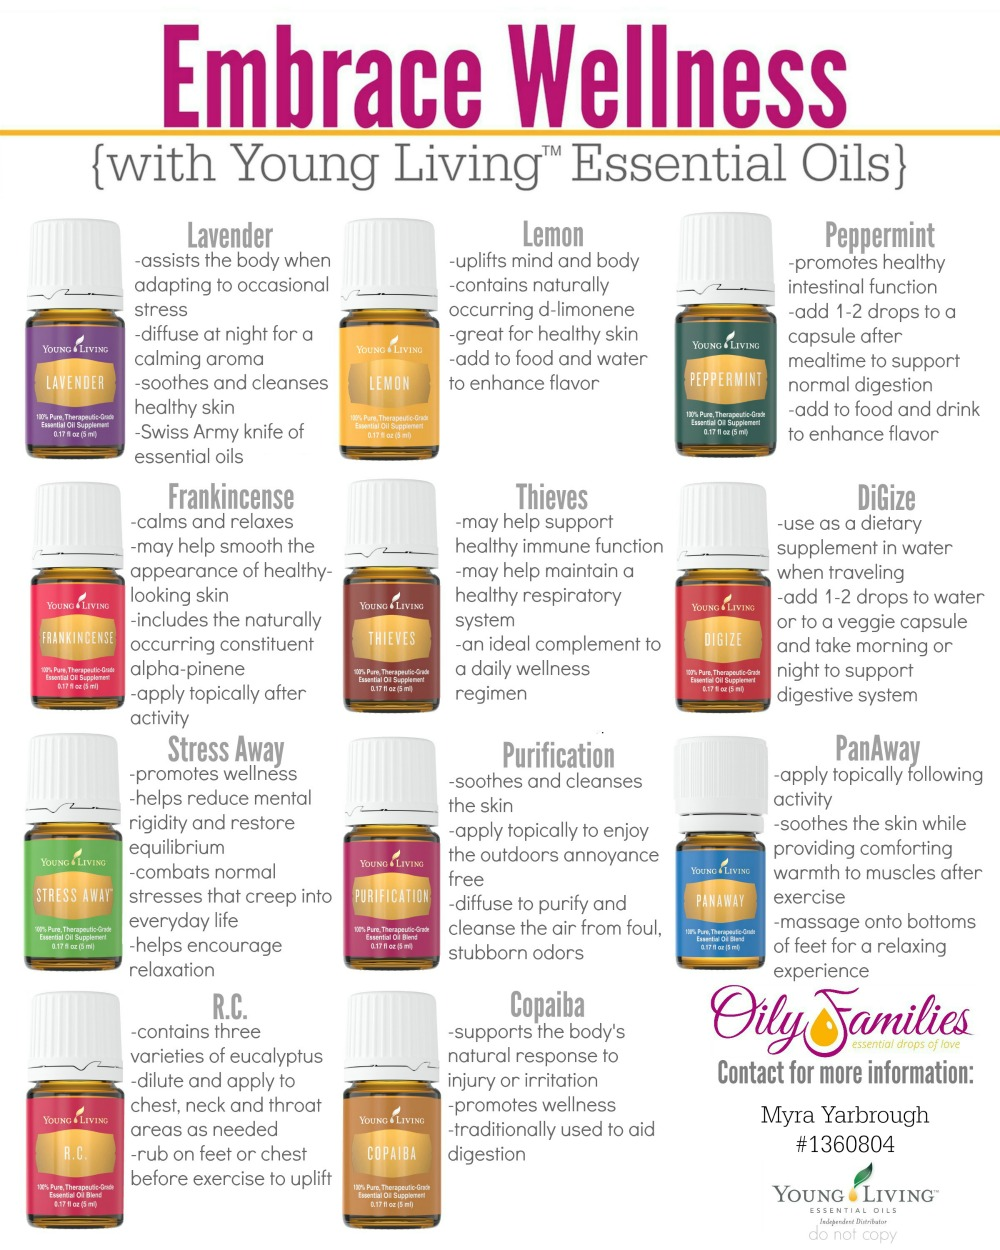 Embrace Wellness with Young Living Essential Oils | MyBlessedLife.net